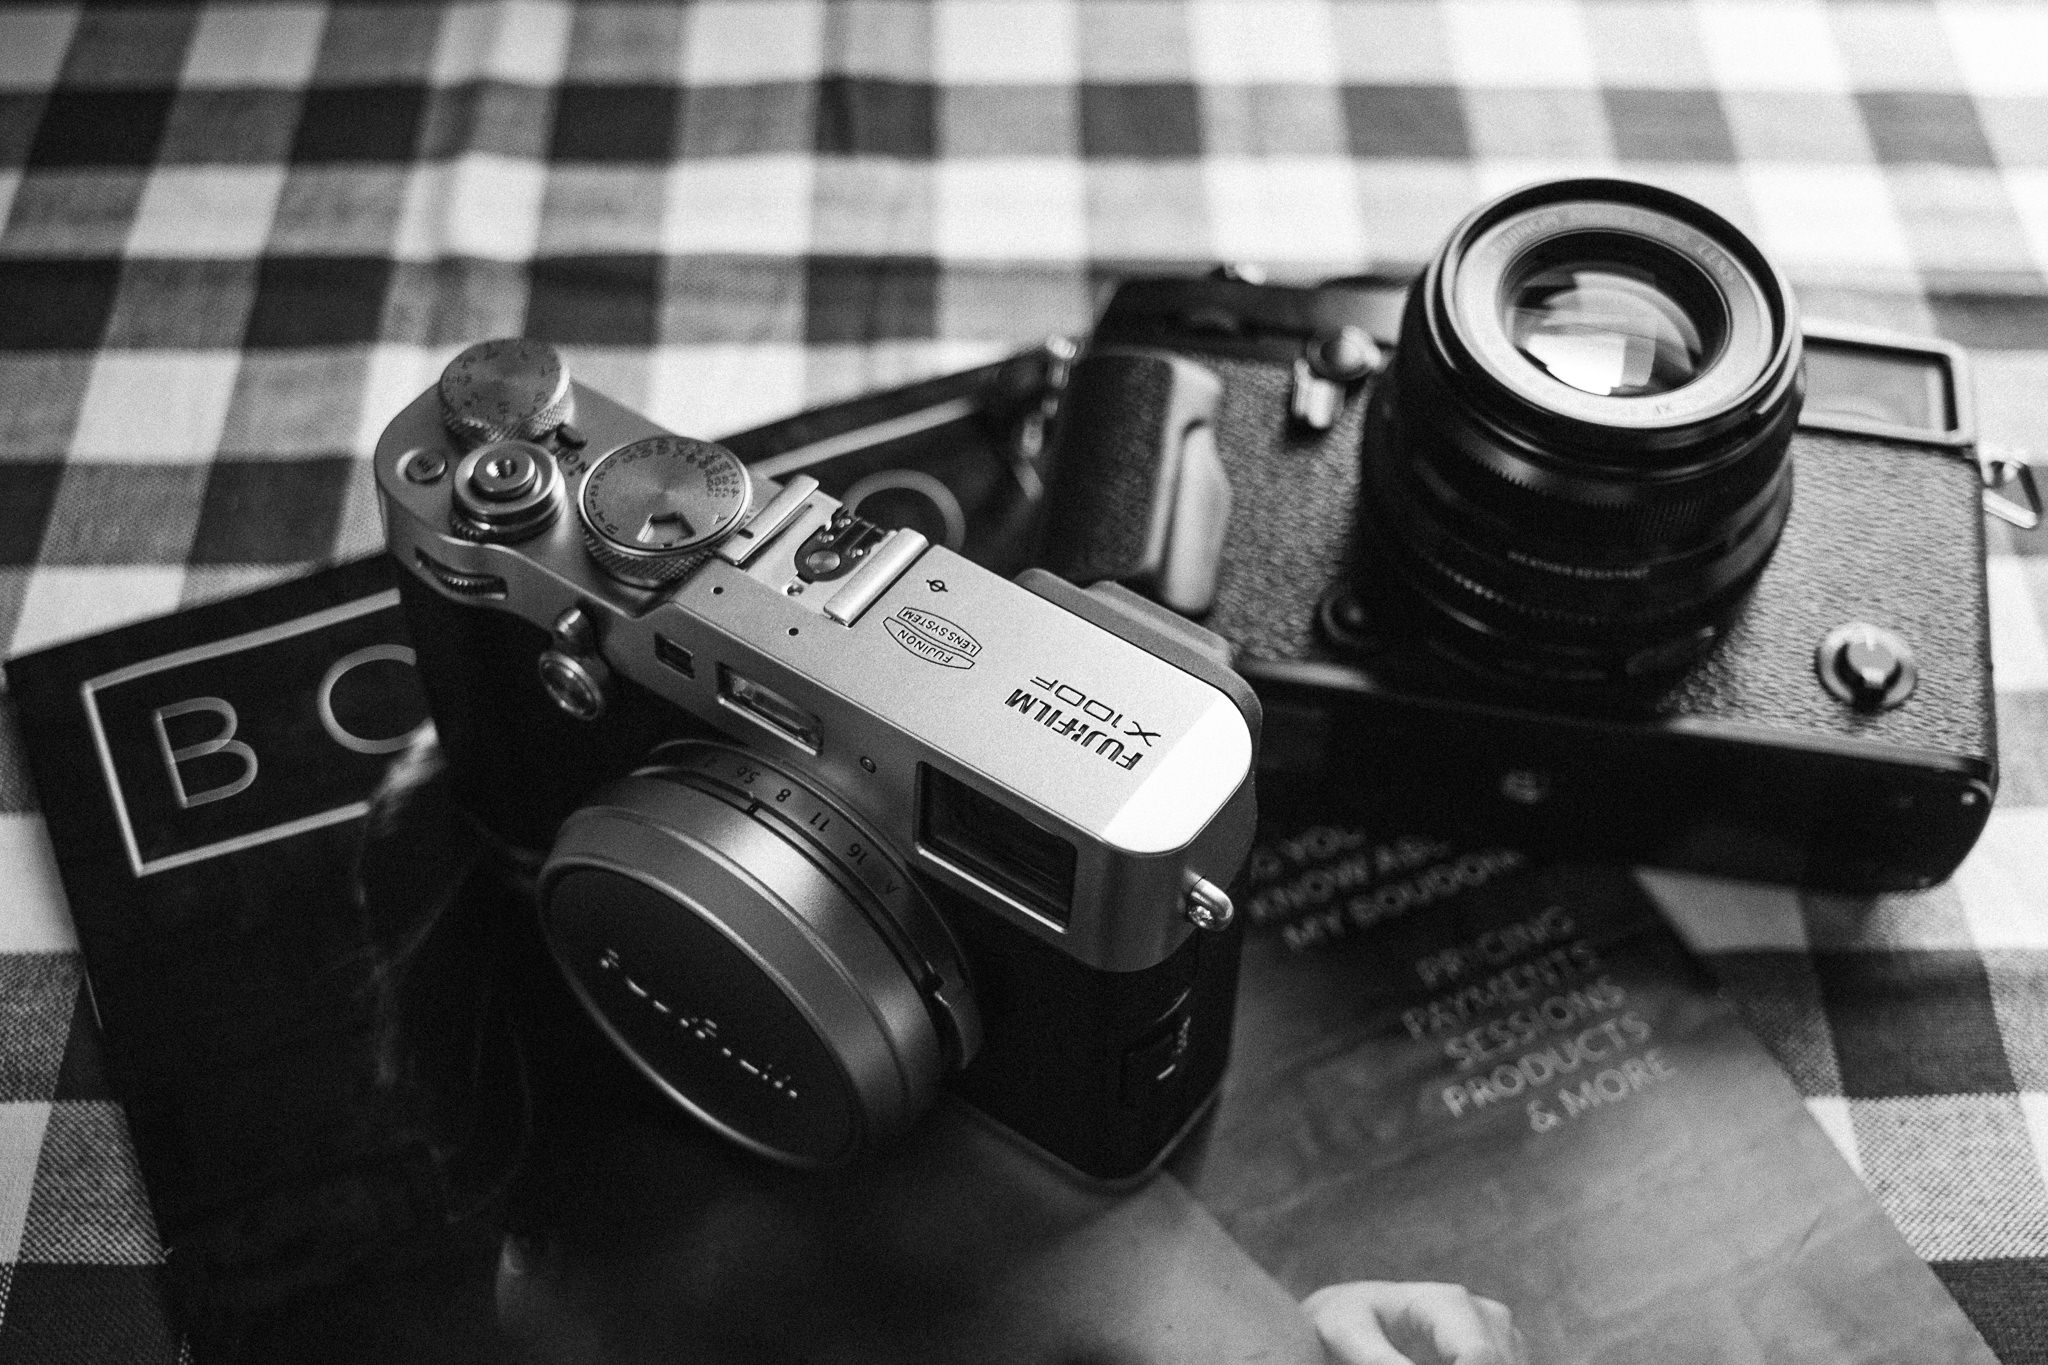 The X100F As A Secondary or Backup Camera? Not For Me